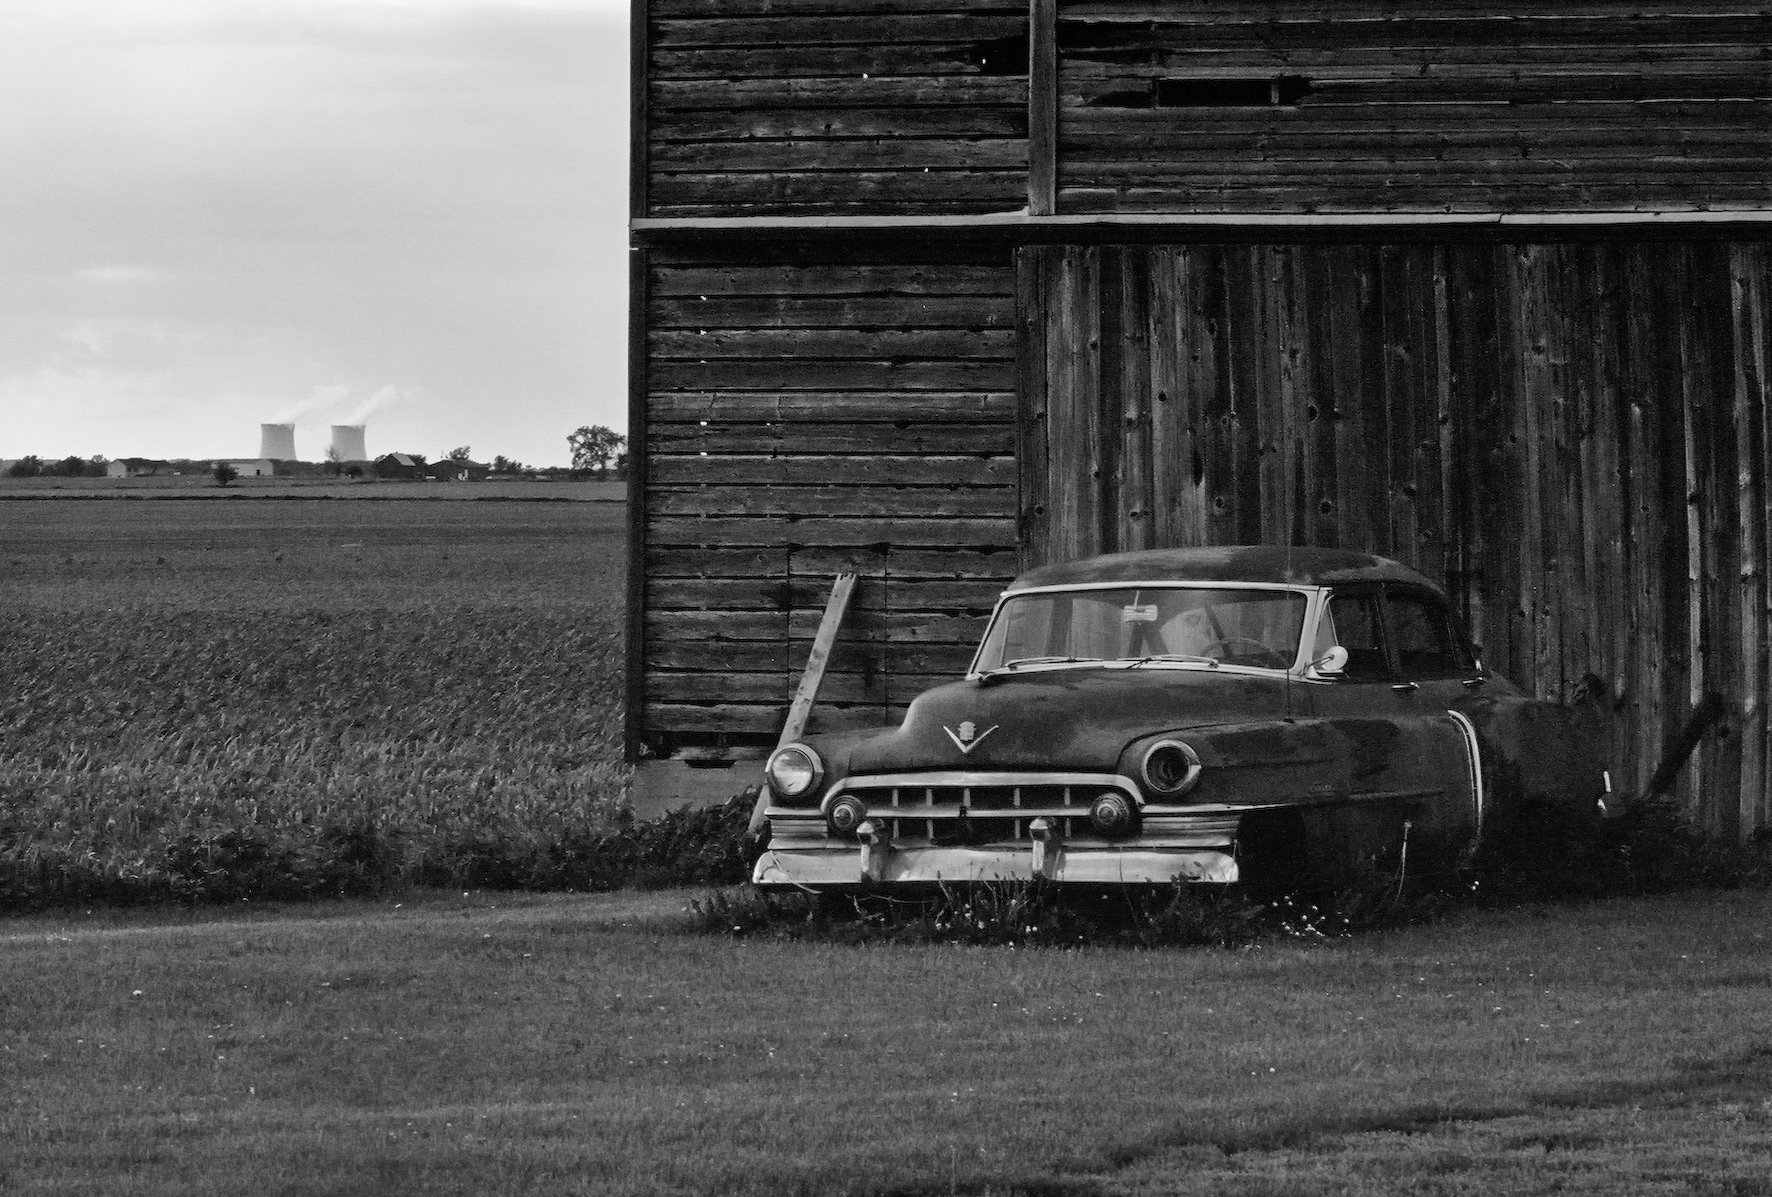 The Old Rusty Cadillac West of Rochelle, Illinois Illinois